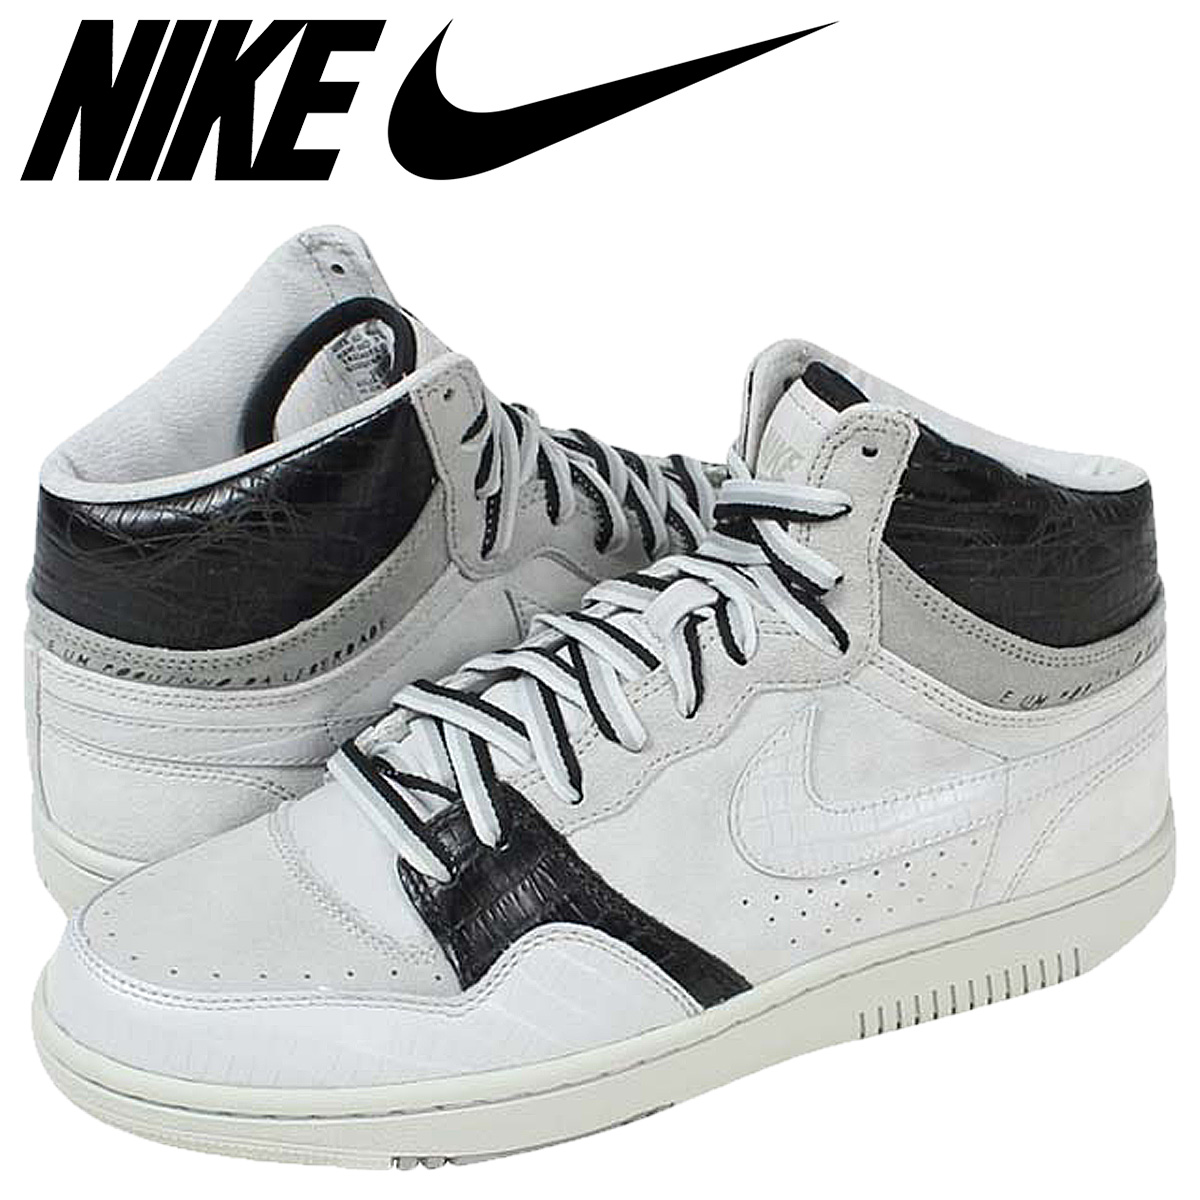 new styles 1d09e cfe18 Nike NIKE air force sneakers COURT FORCE HI WORLD CUP coat force high World  Cup 313,385 ...